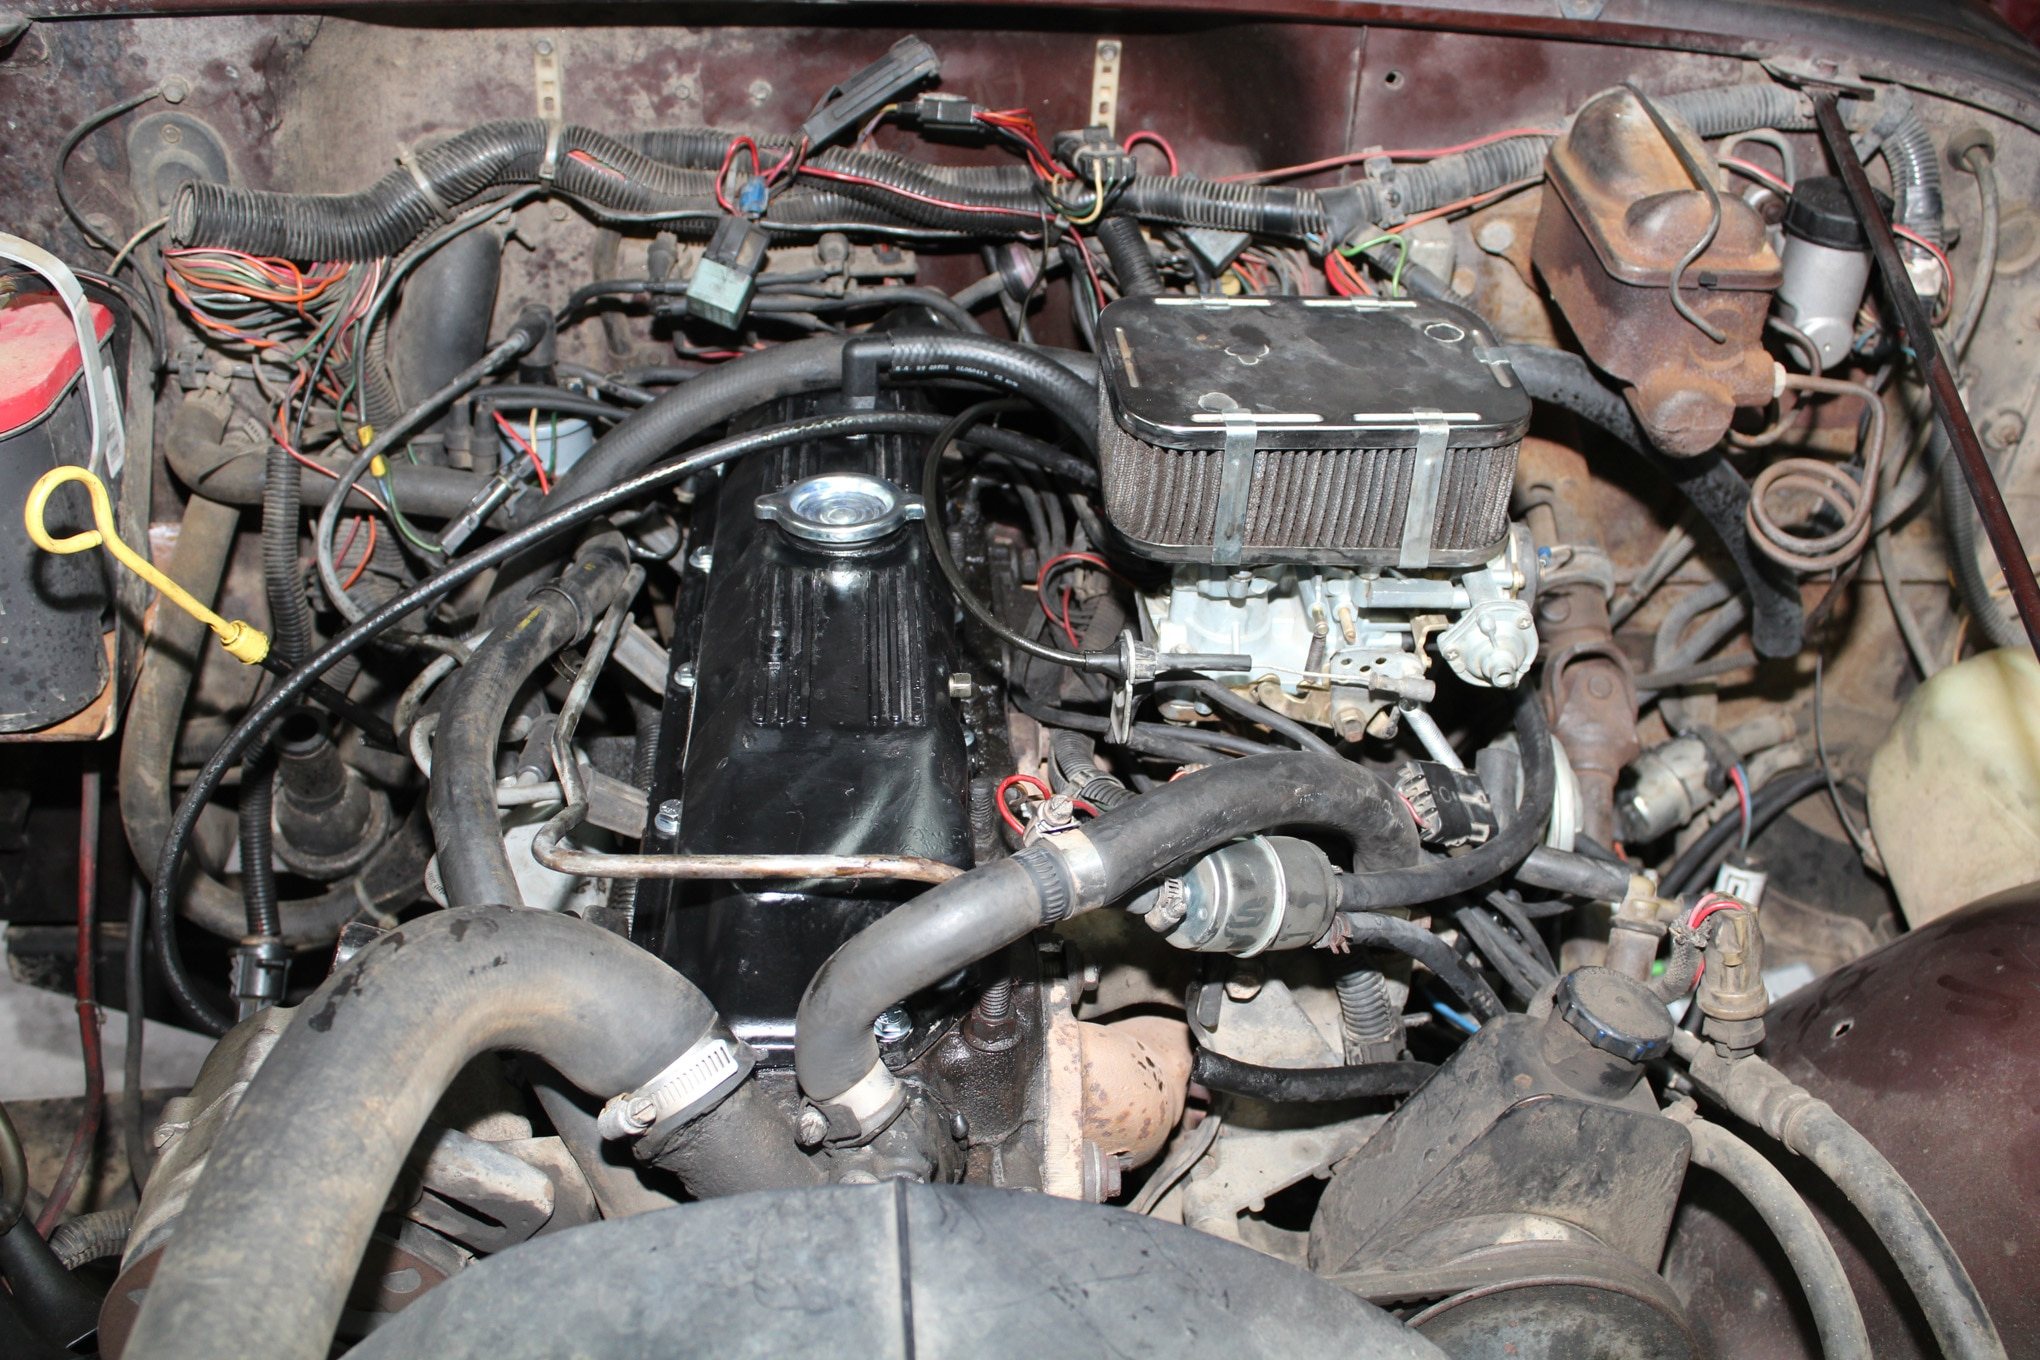 The later valve cover looks right at home on the earlier engine. Note that if your engine had a PCV valve, that hose needs to be connected to a specially ported nipple that will be present on the later valve cover. We managed to lose the nipple when we were cleaning up the valve cover, so we temporarily installed a plug until our next trip to the junkyard, at which time we grabbed a replacement.